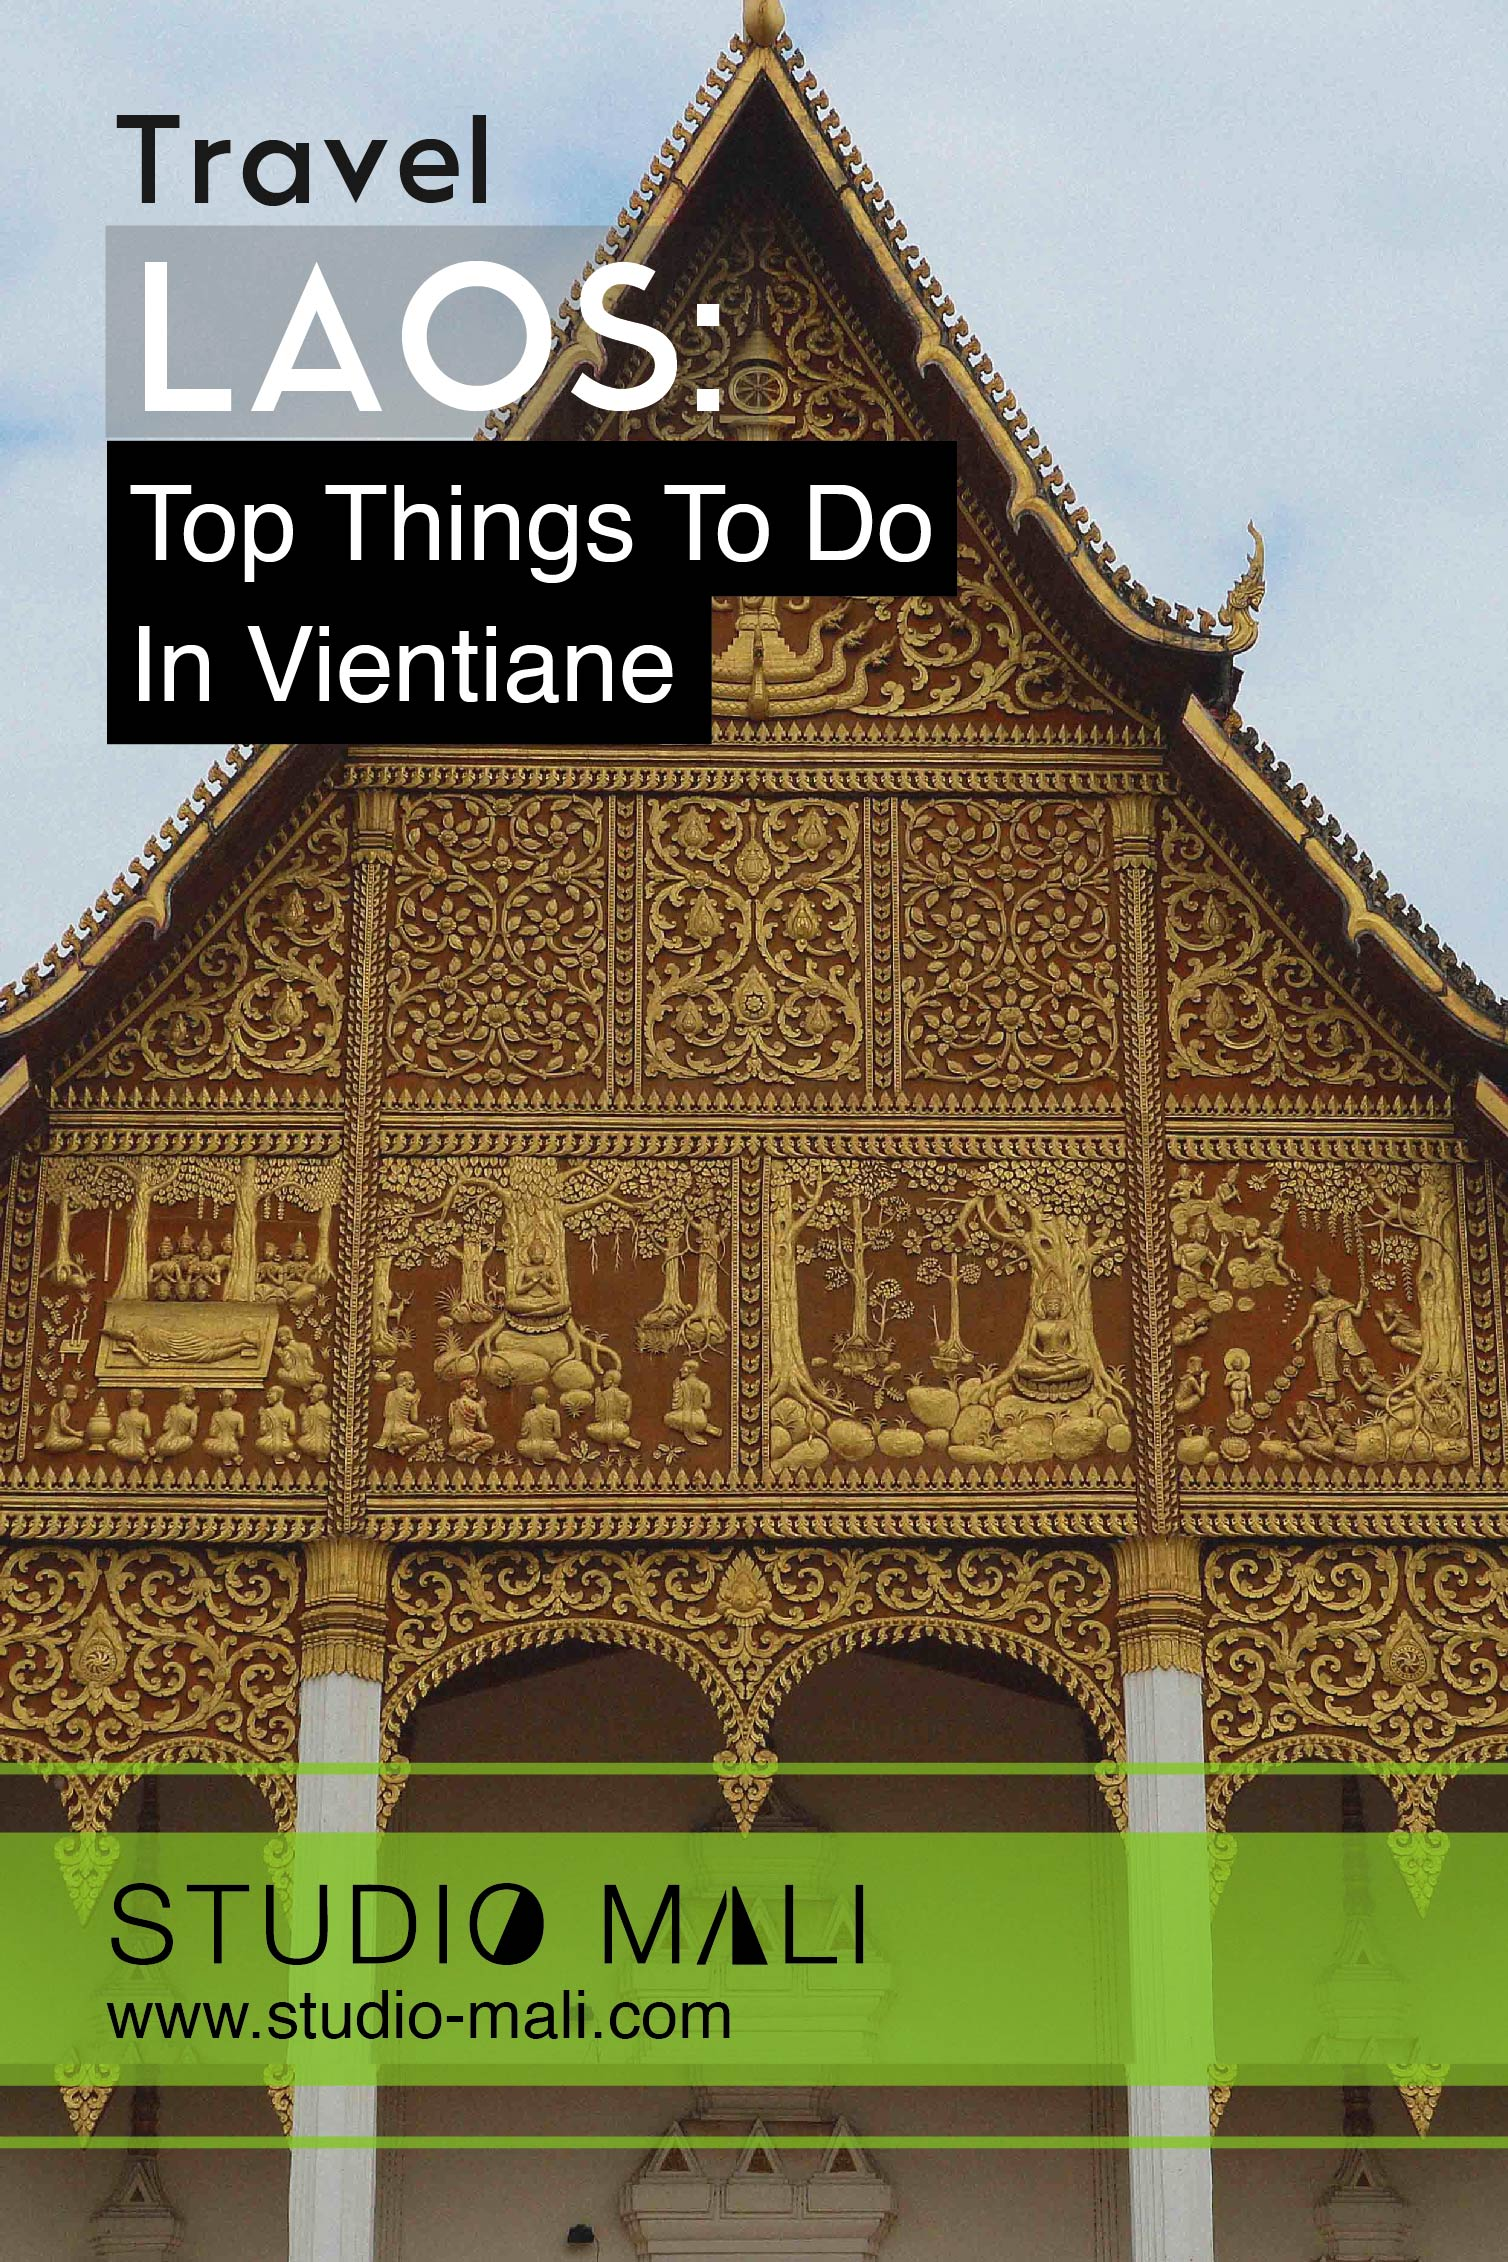 Laos - Top Things To Do In Vientiane, by Studio Mali